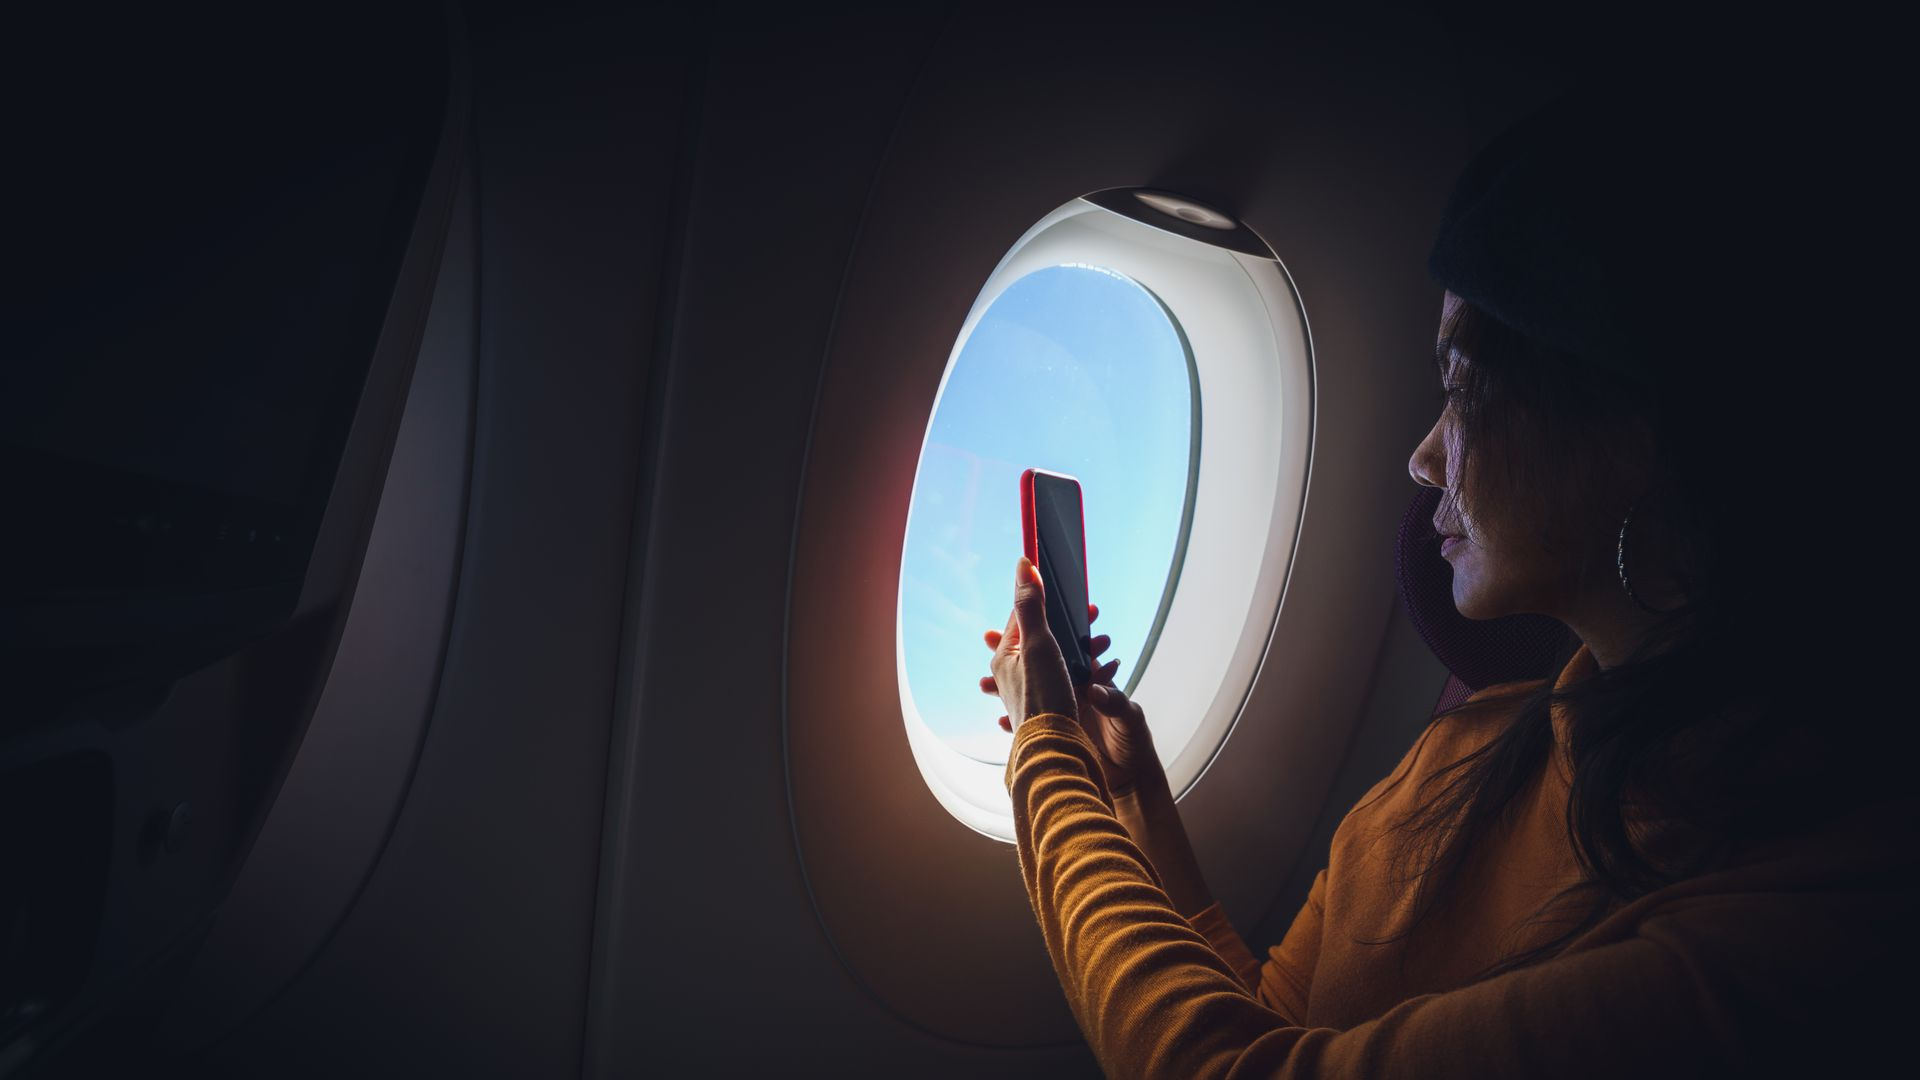 A passenger taking photos from their window seats.